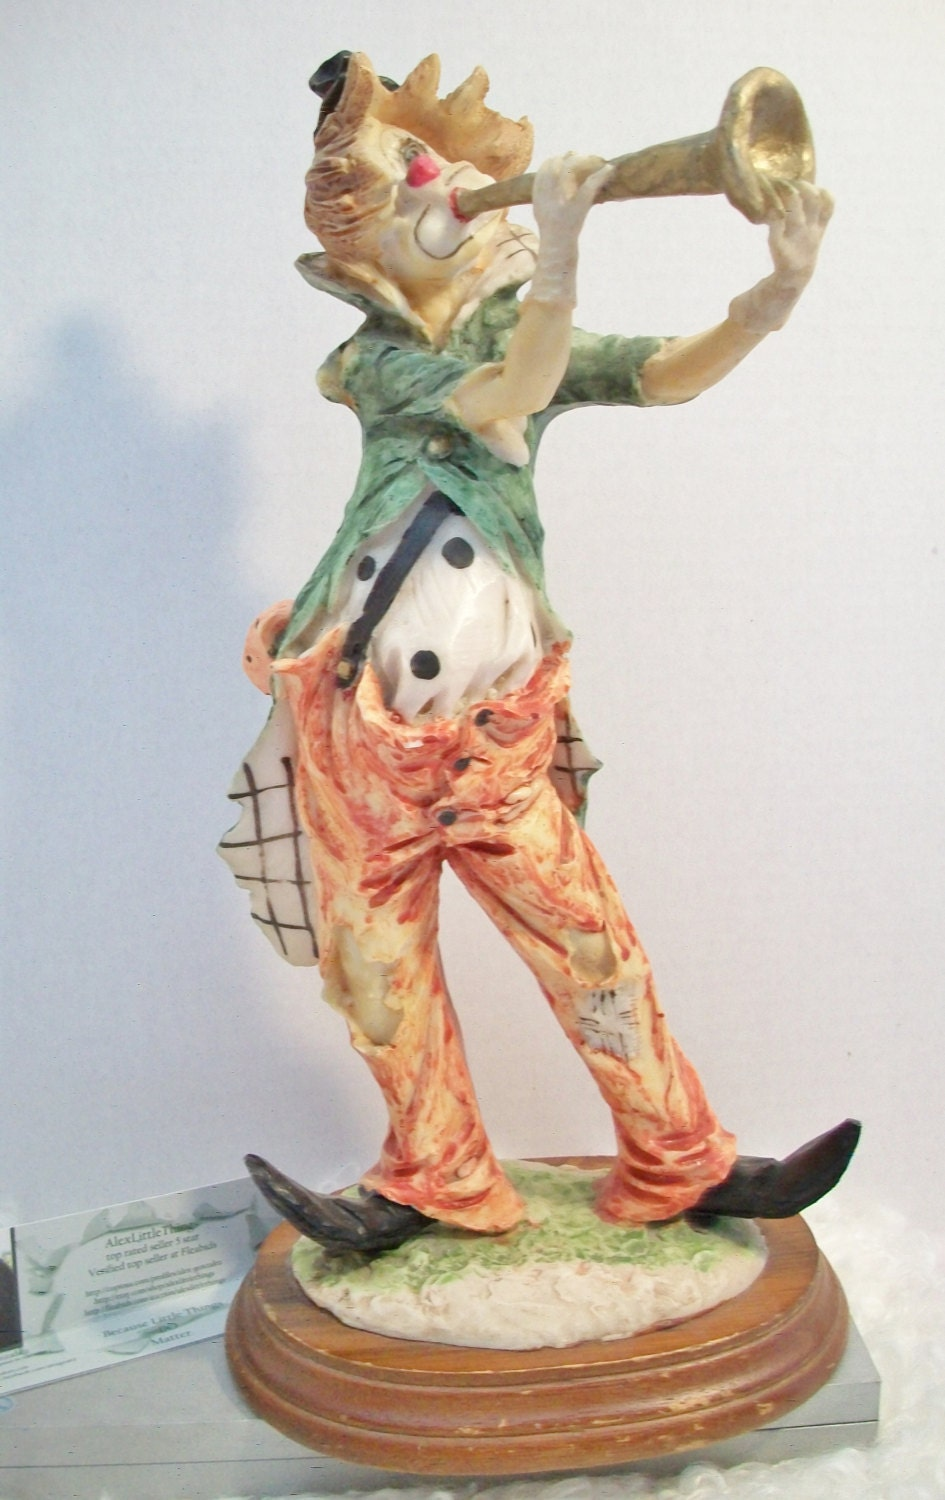 af6905f0bac25 Vintage Hobo Clown Playing Horn Statuette Figurine Retro Collectible ...